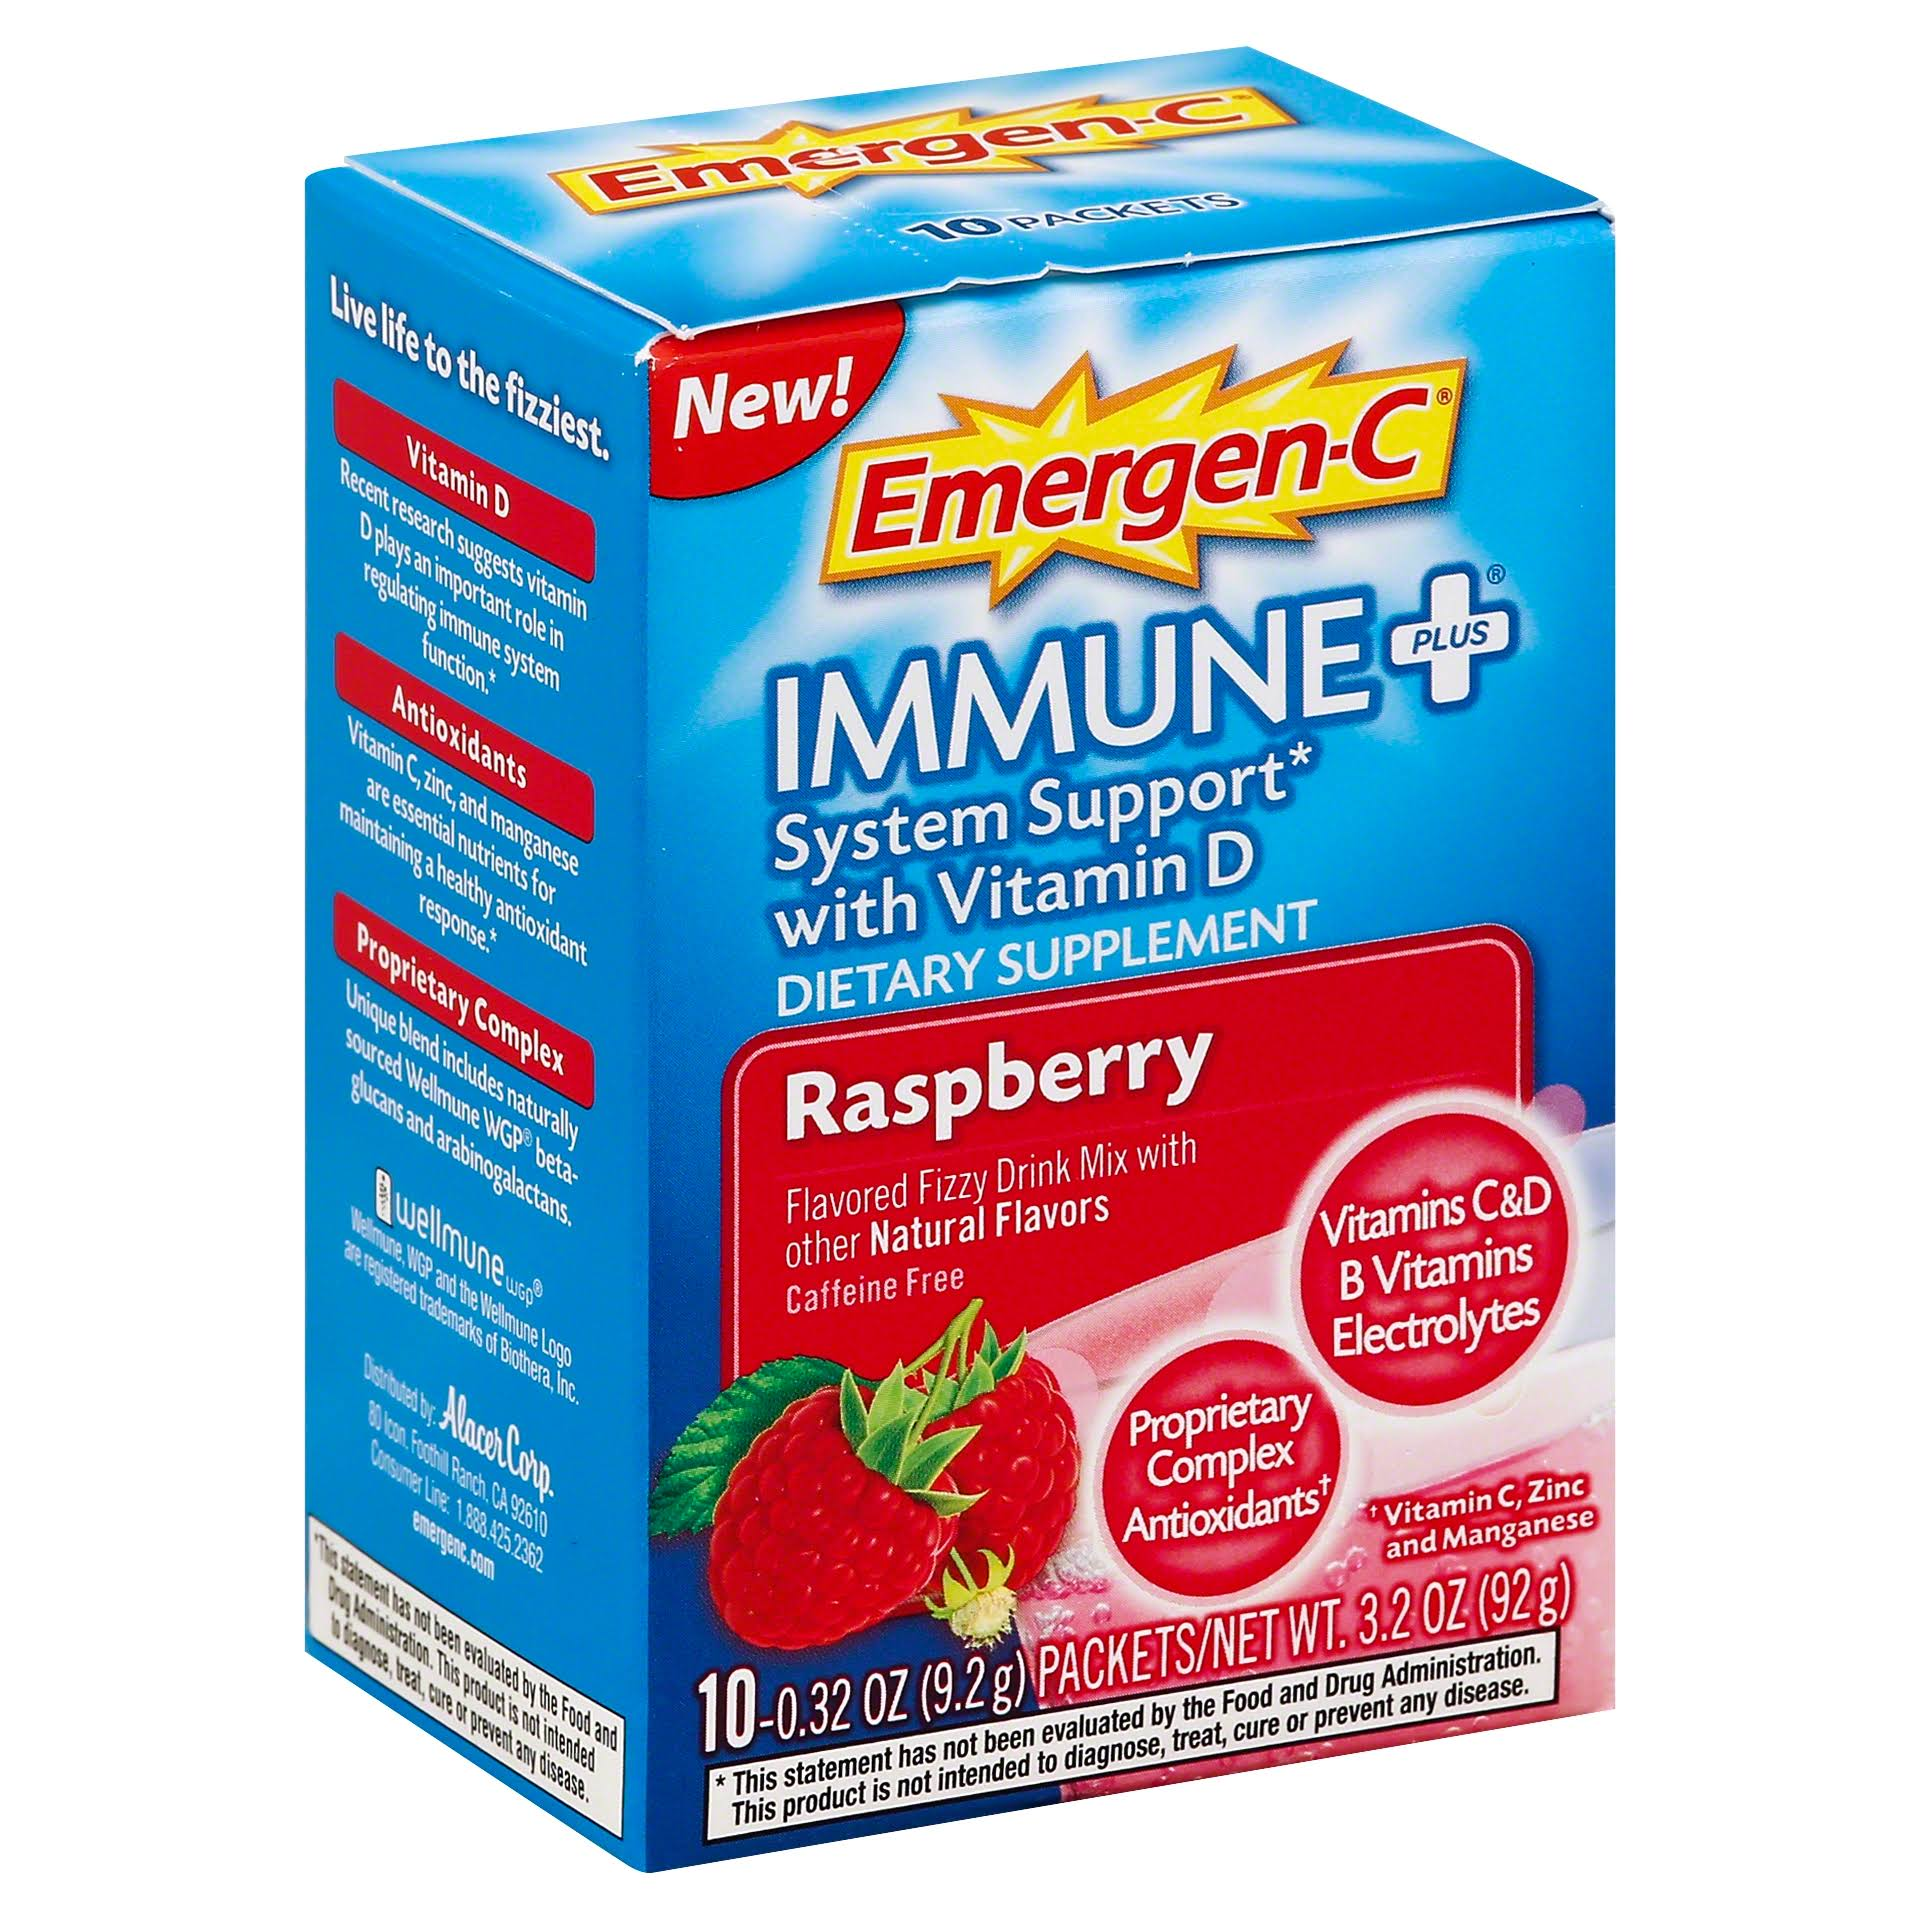 Emergen-C Immune Plus System Support Dietary Supplement - Raspberry, 92g